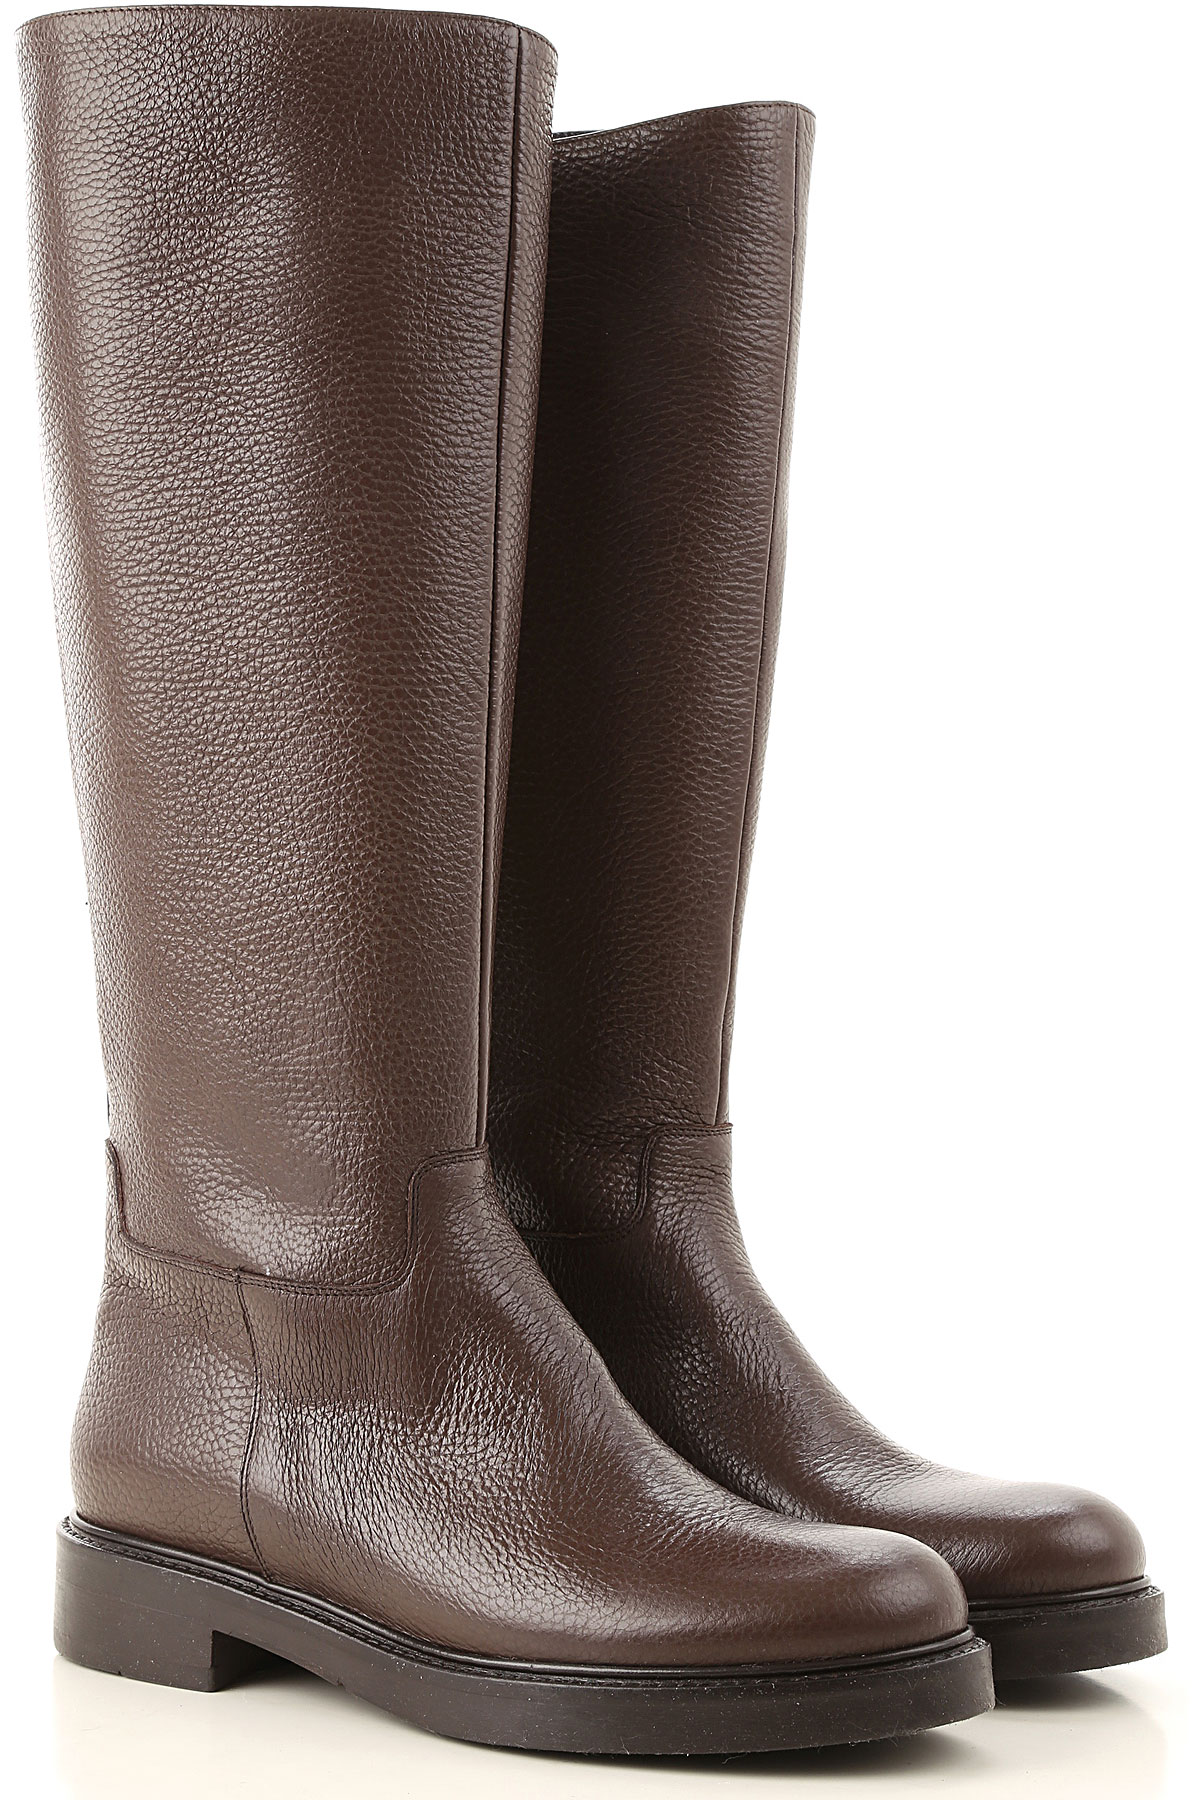 Guglielmo Rotta Boots for Women, Booties On Sale, Cacao, Leather, 2019, 6 7 8 9